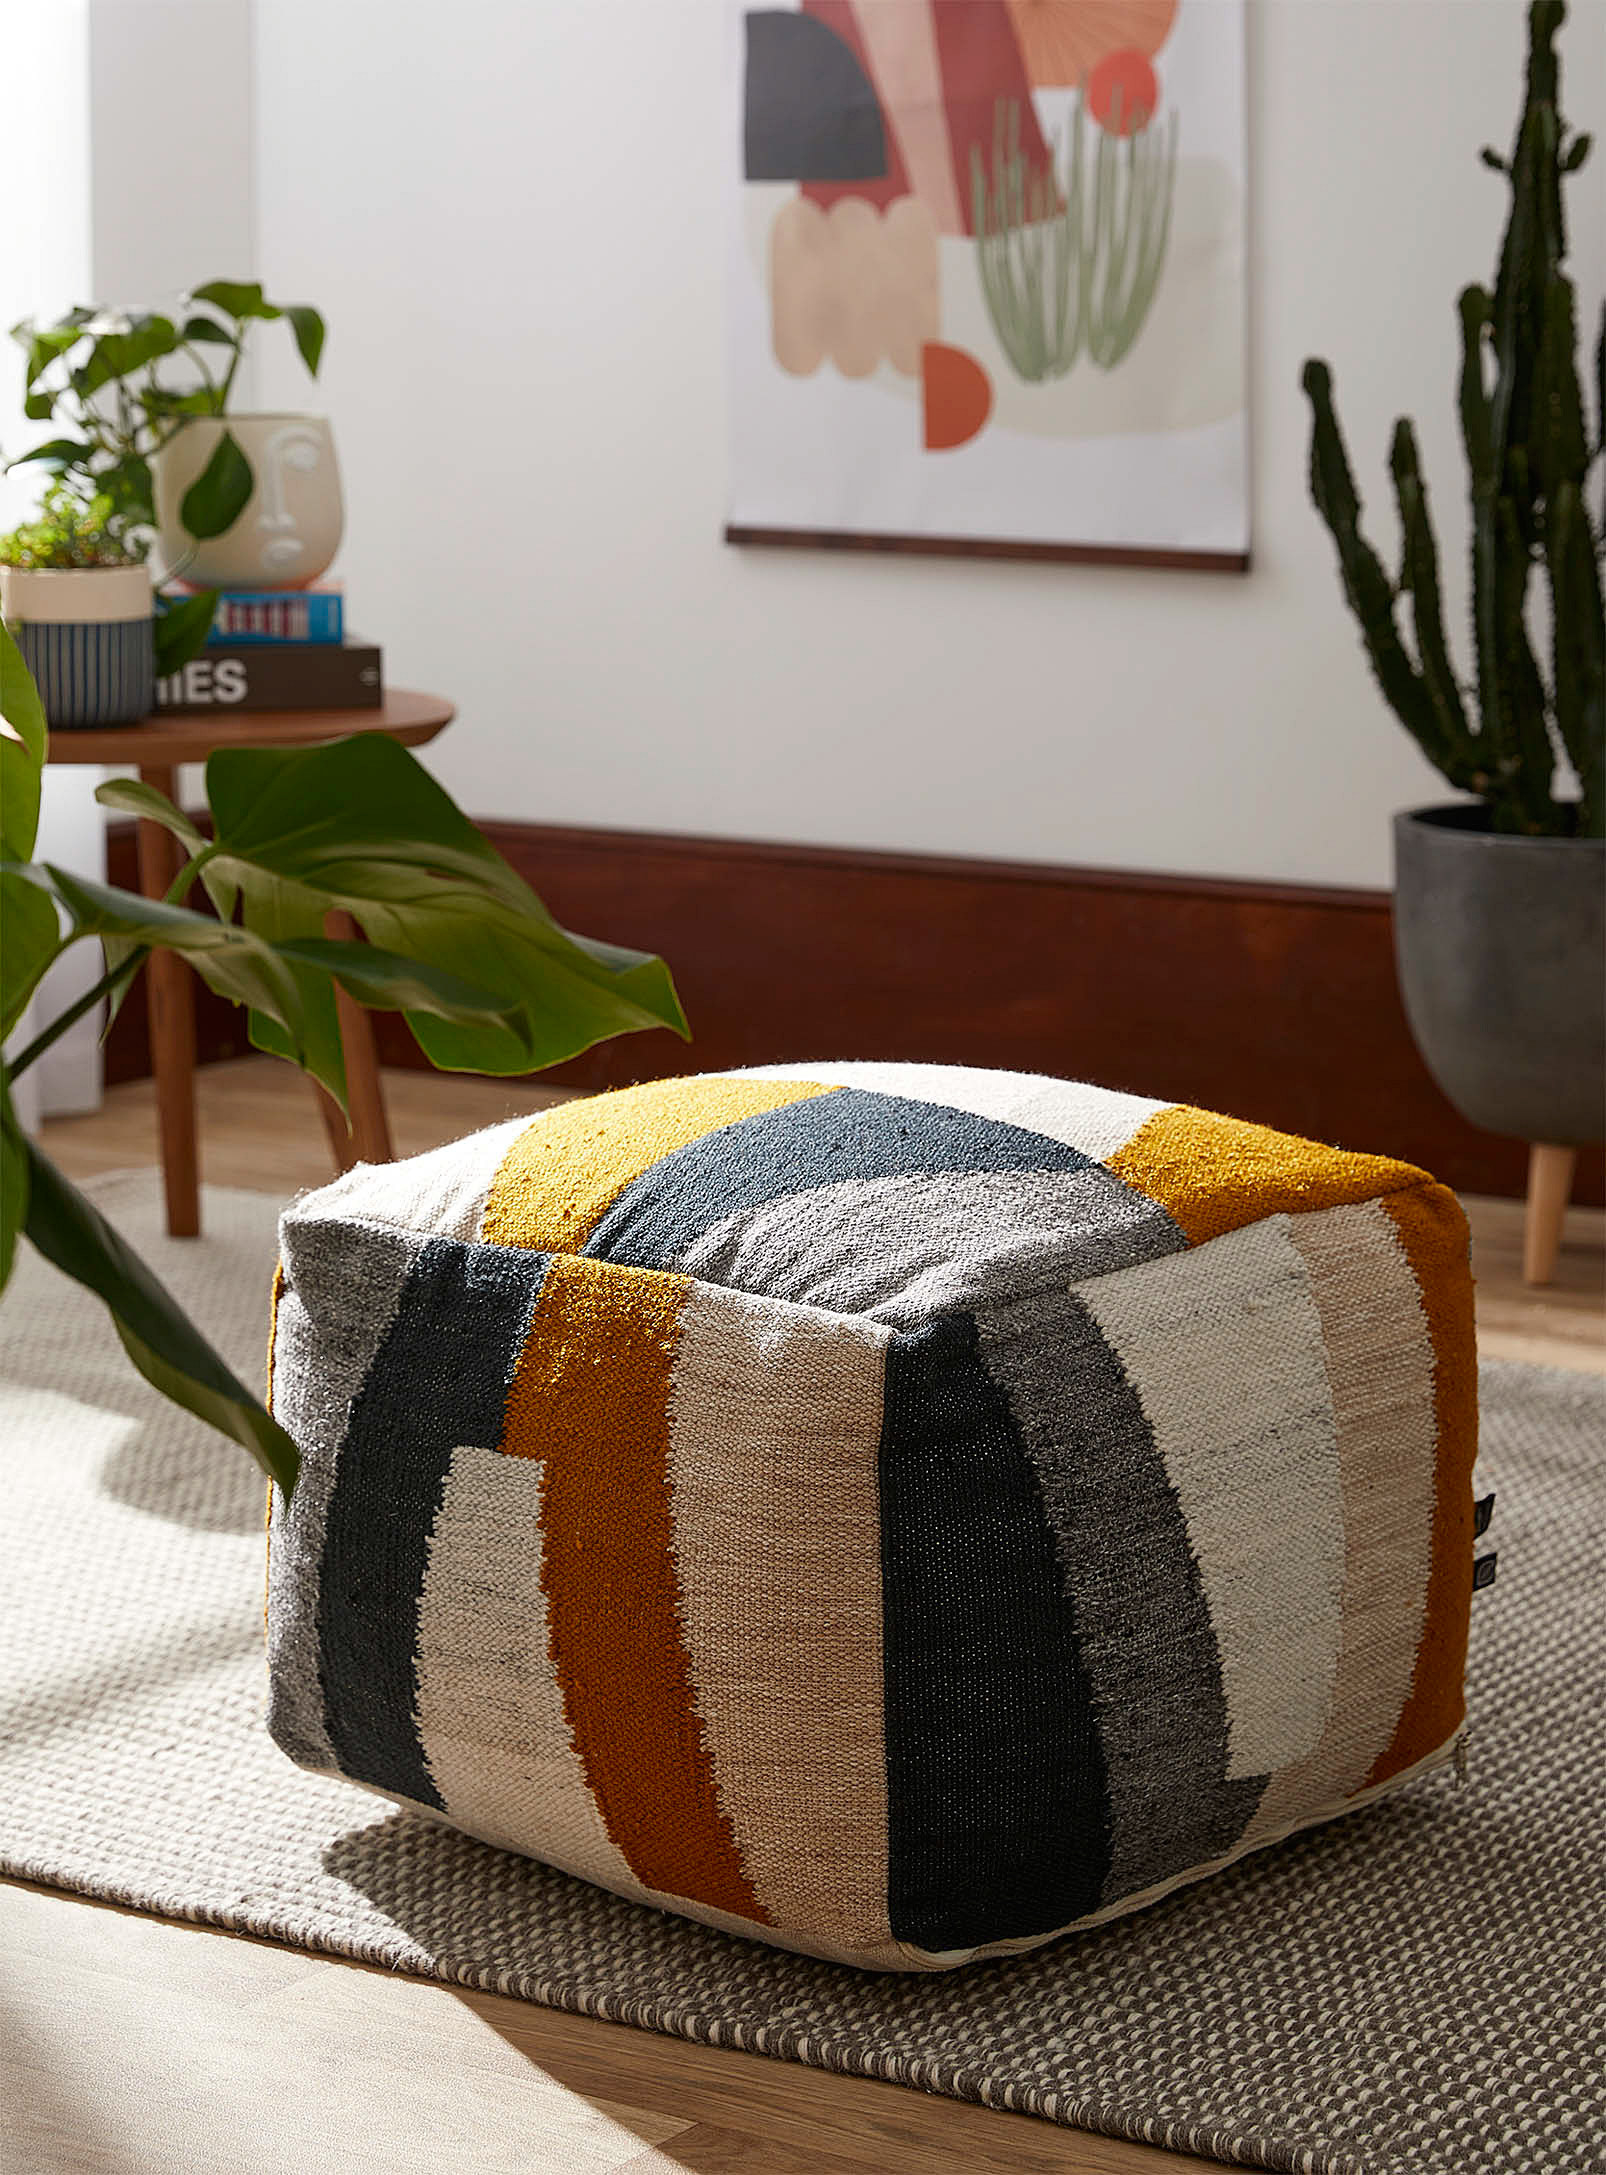 A large square-shaped ottoman on a carpet in a living room